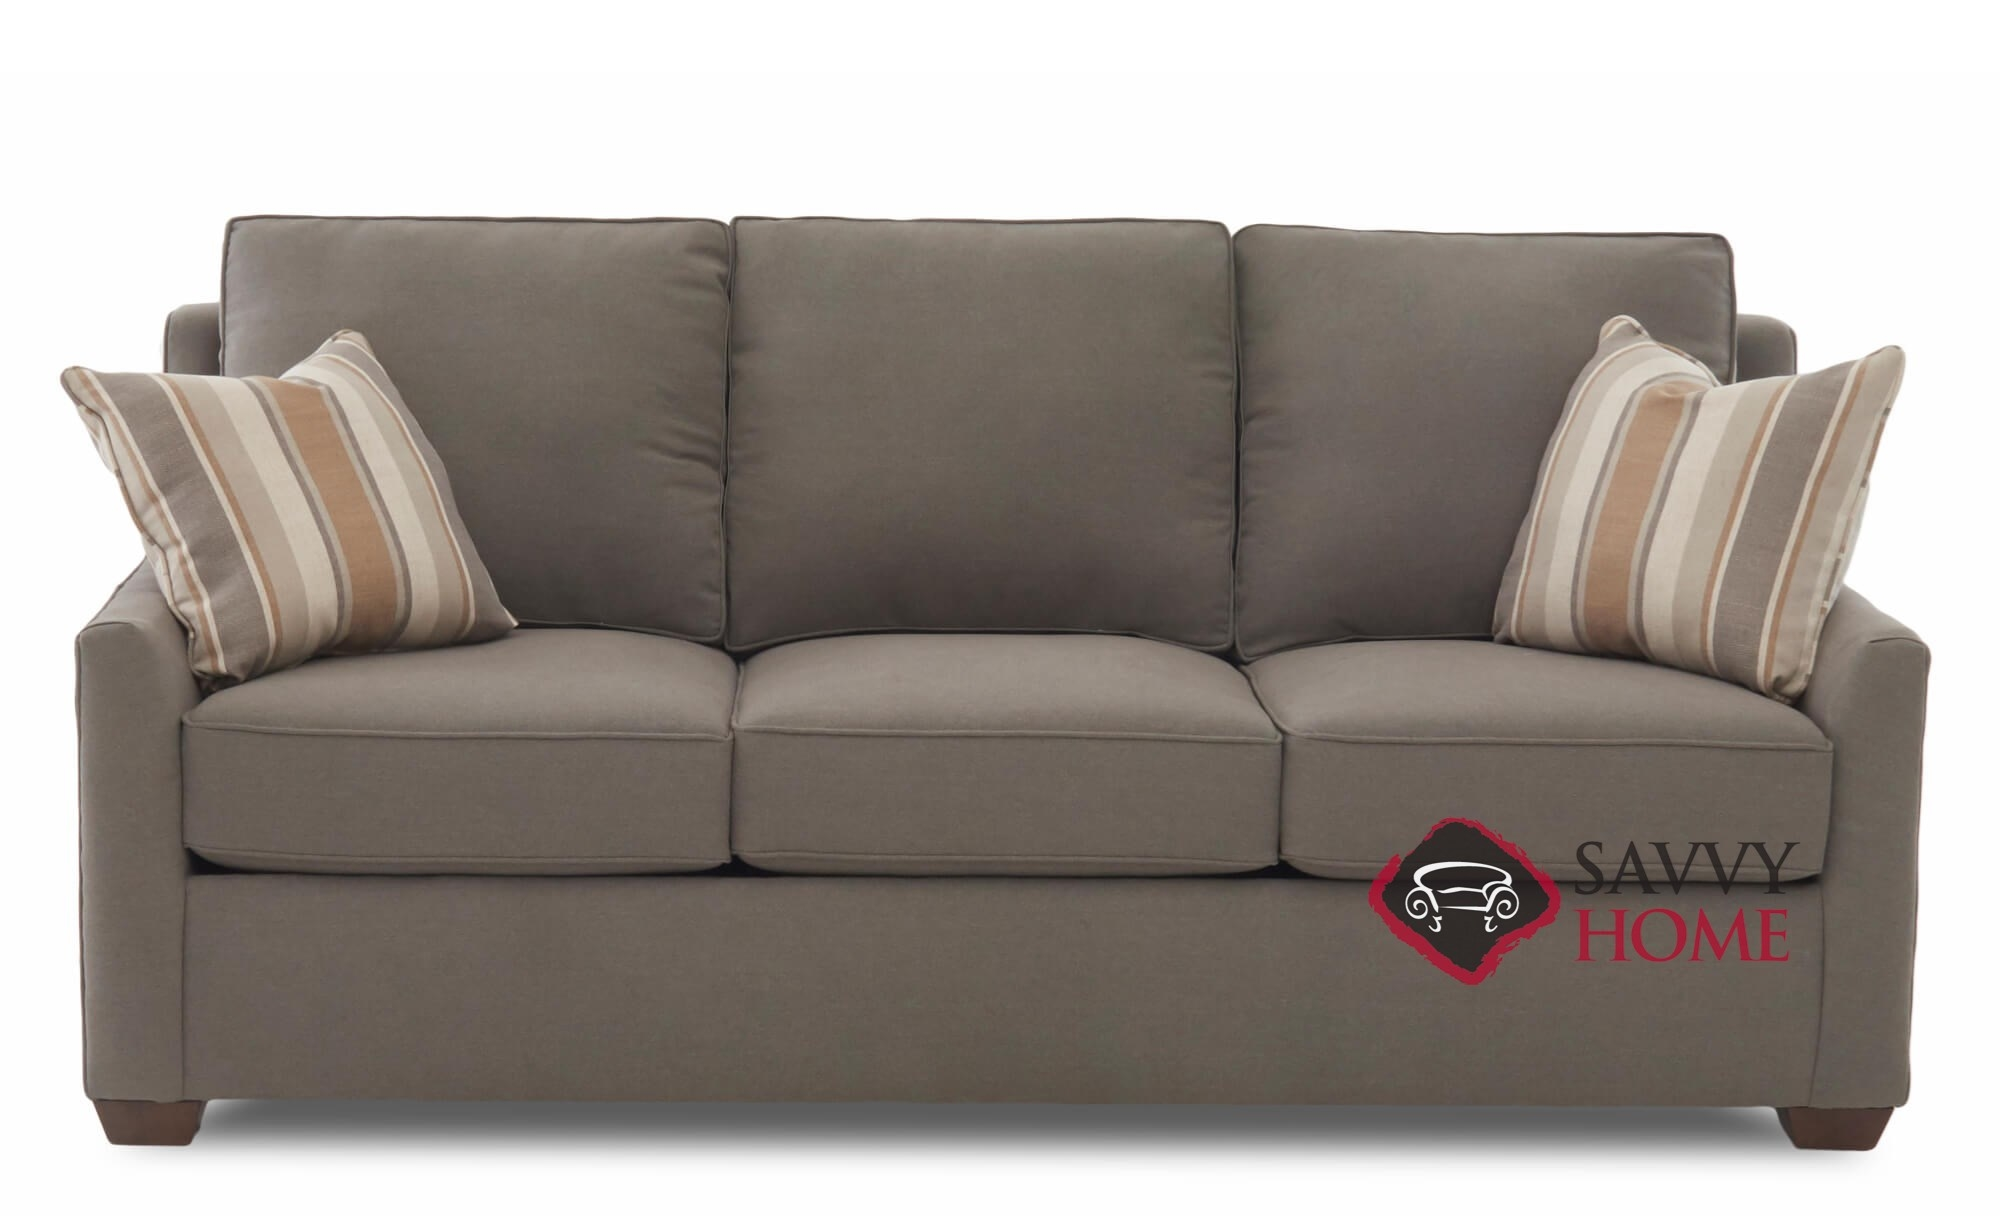 Queen Sofa Bed Fairfield Queen Sofa Bed By Savvy